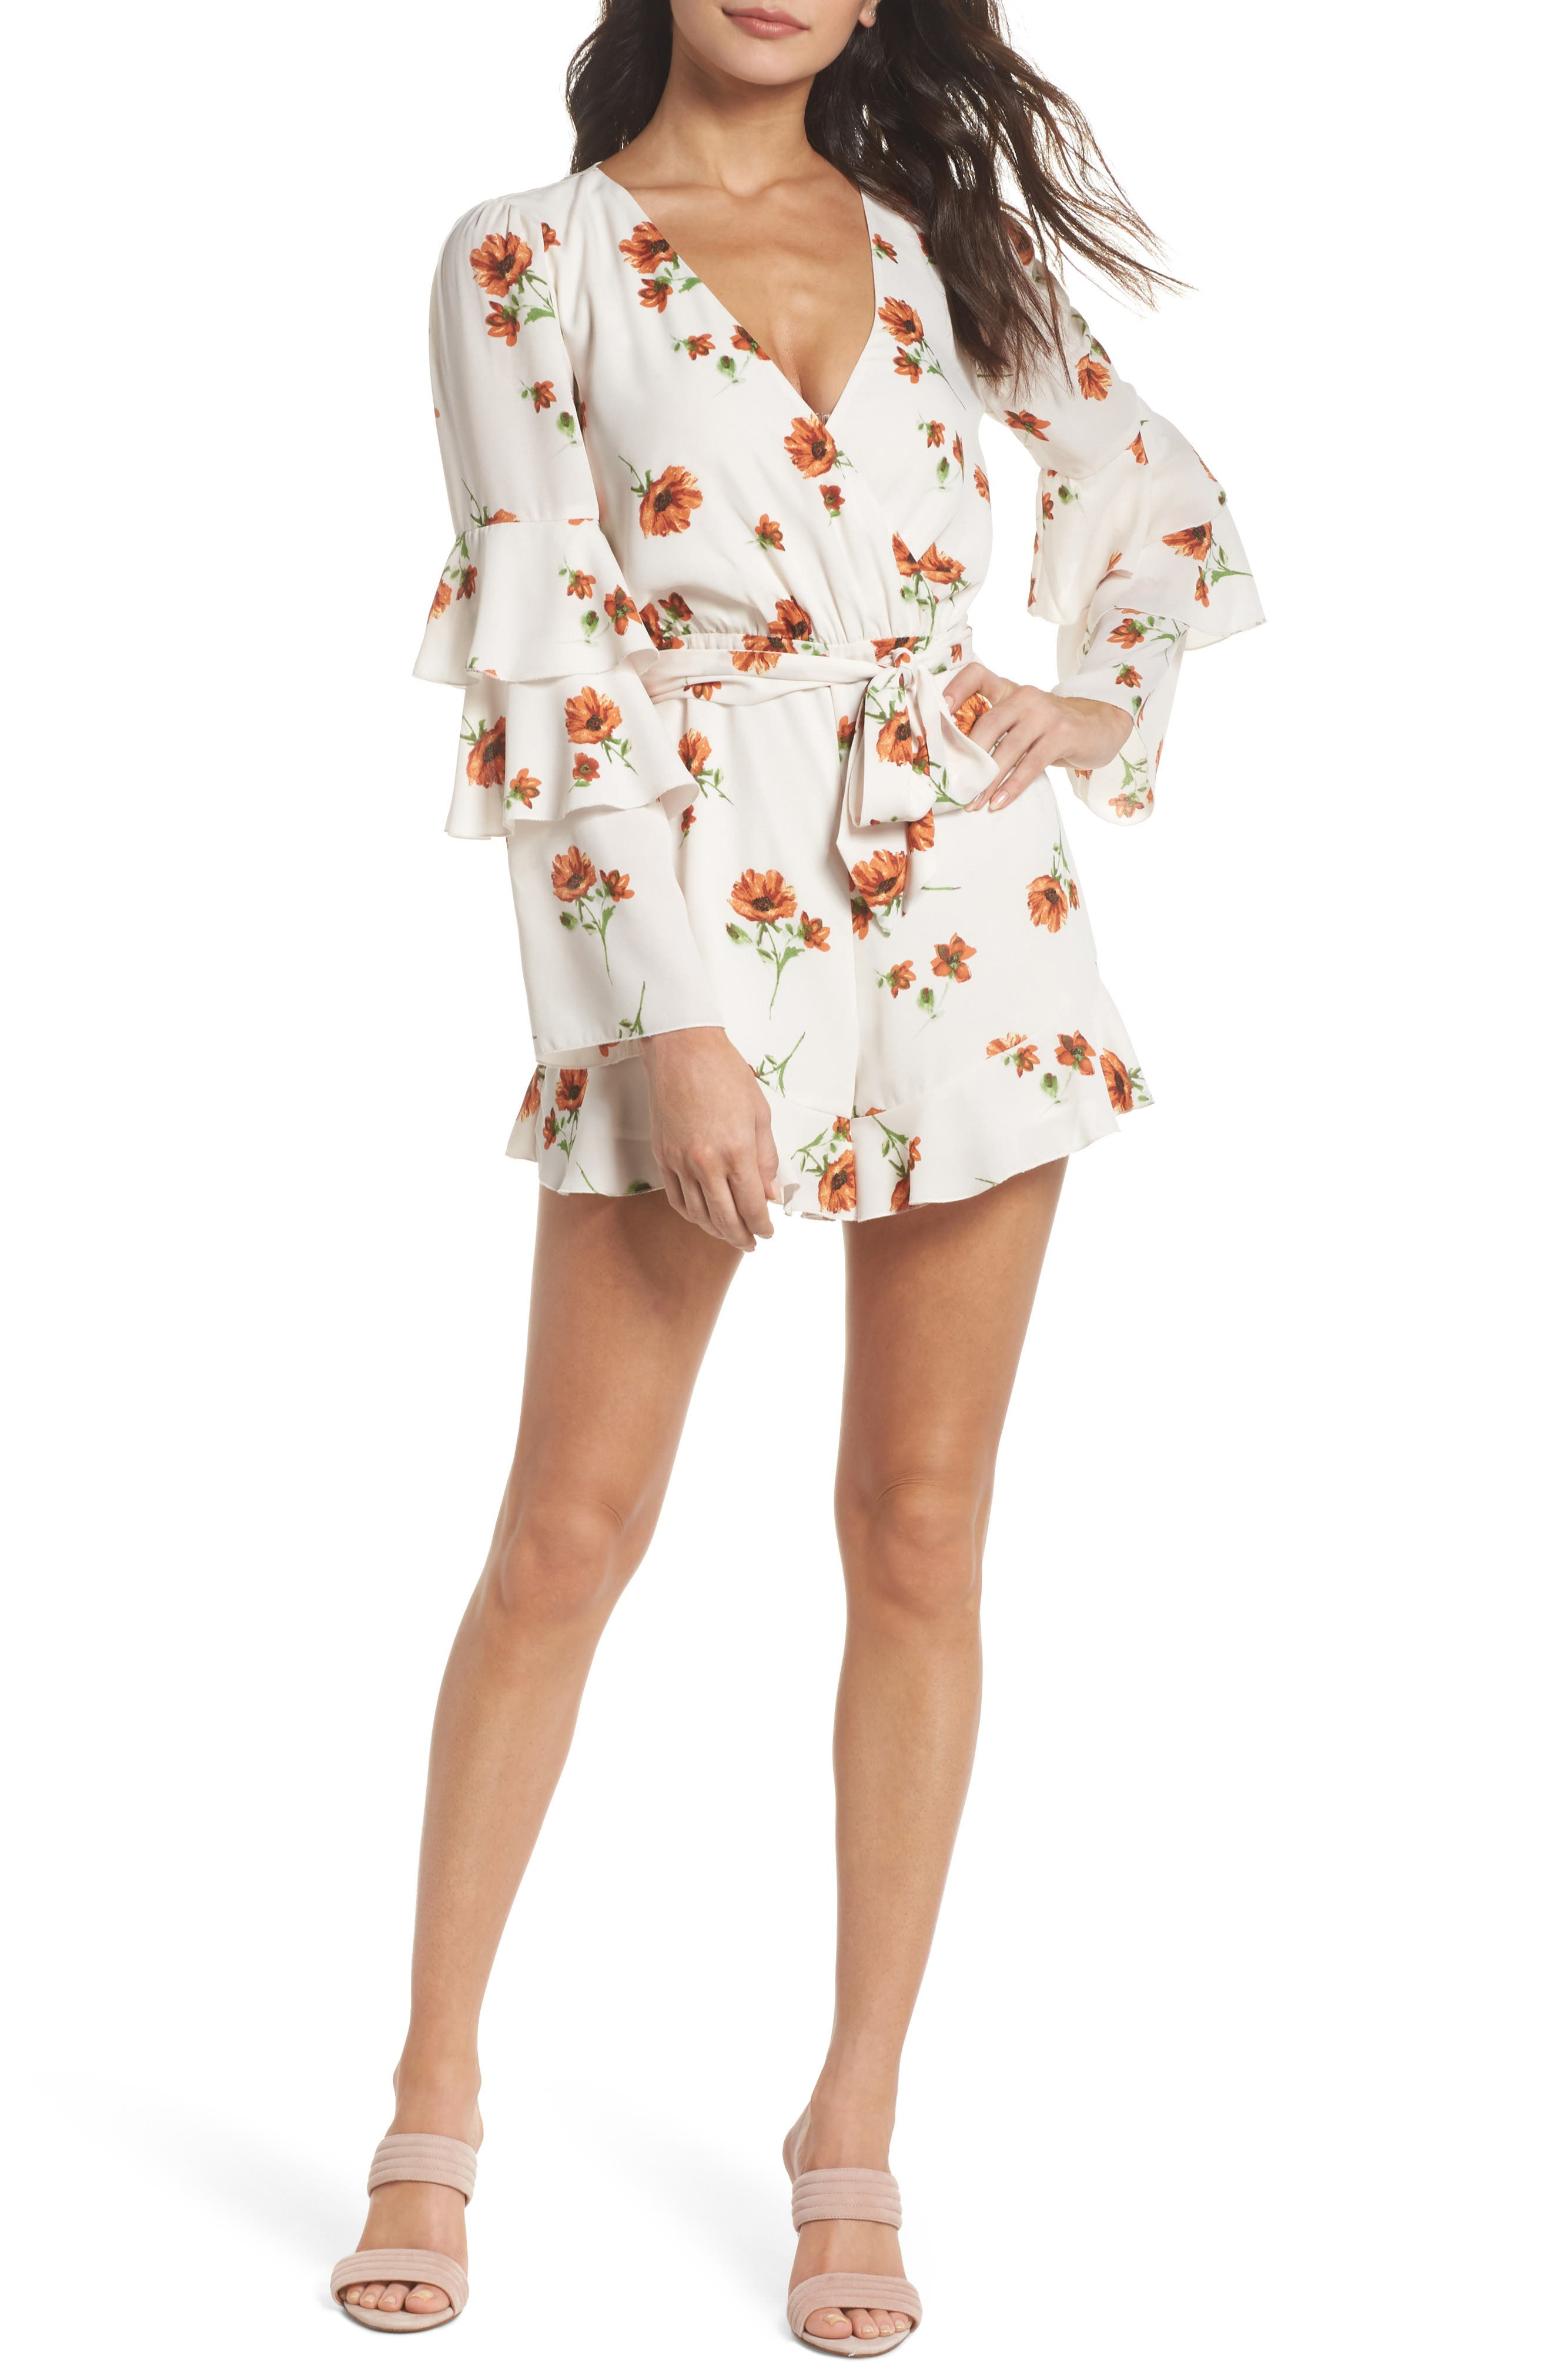 Main Image - Ali & Jay Silverlake Floral Ruffle Romper